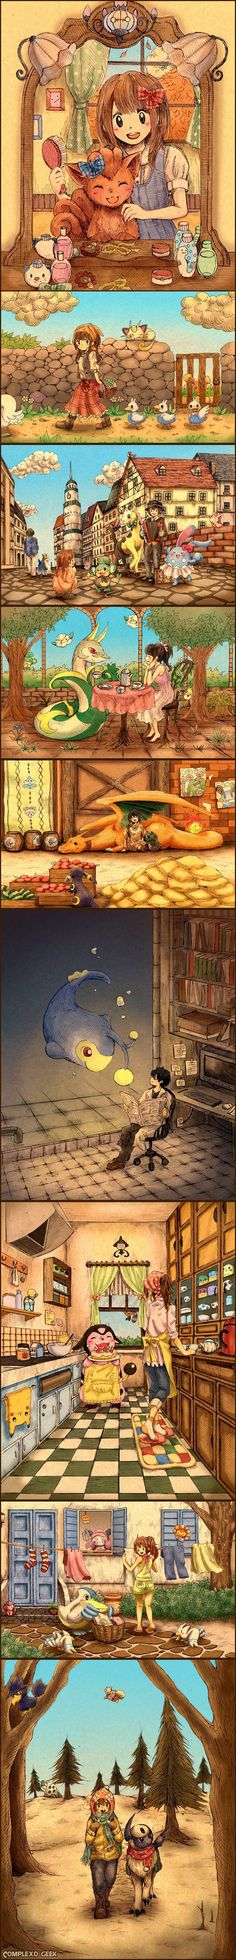 I can imagine myself being the girl in the last picture. I would probably have my luxray on the other side of me